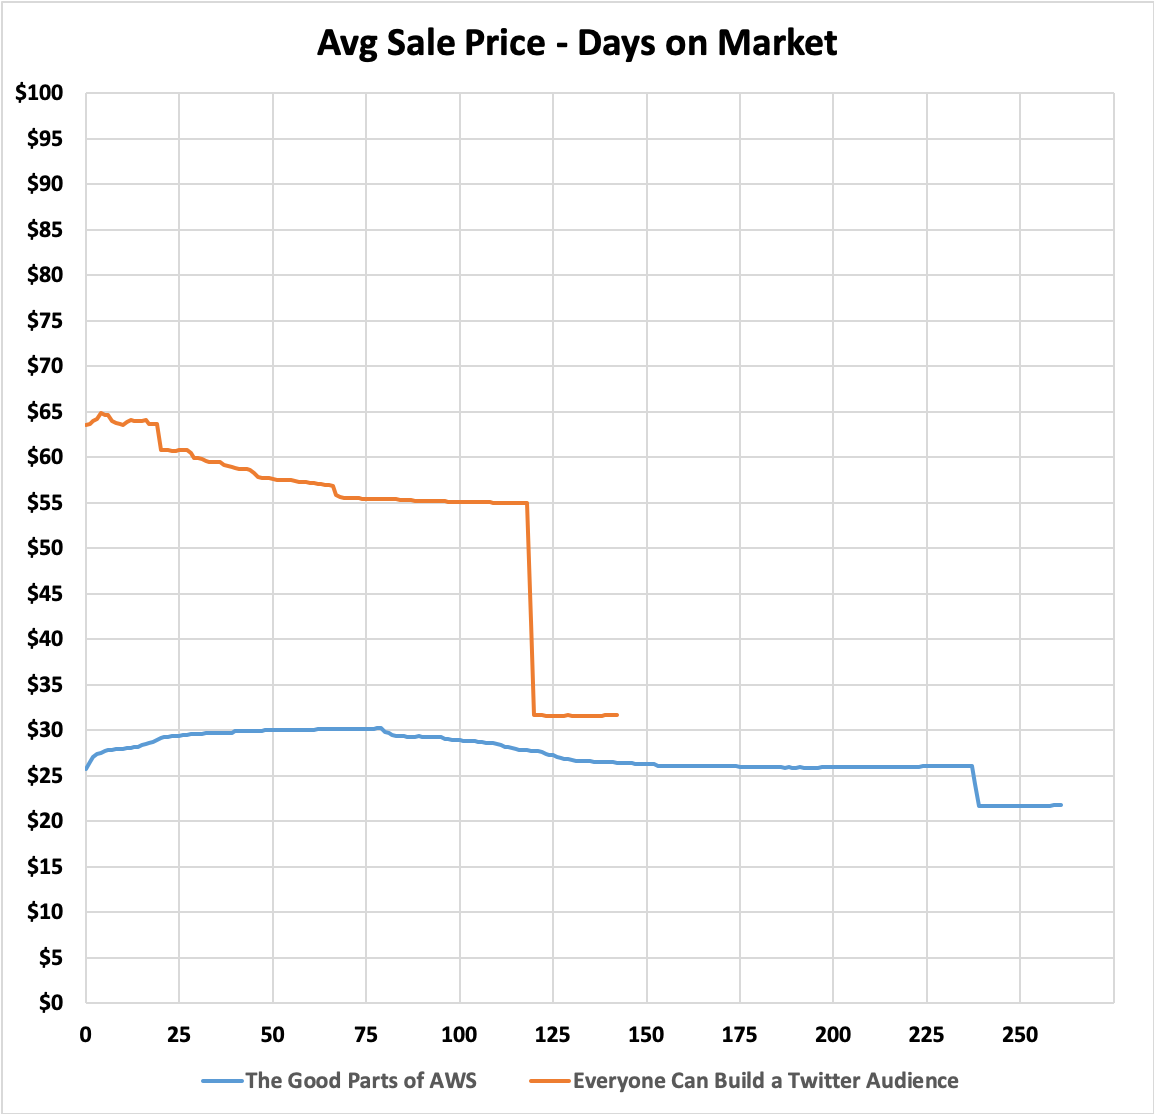 Avg Sale Price - Days on Market